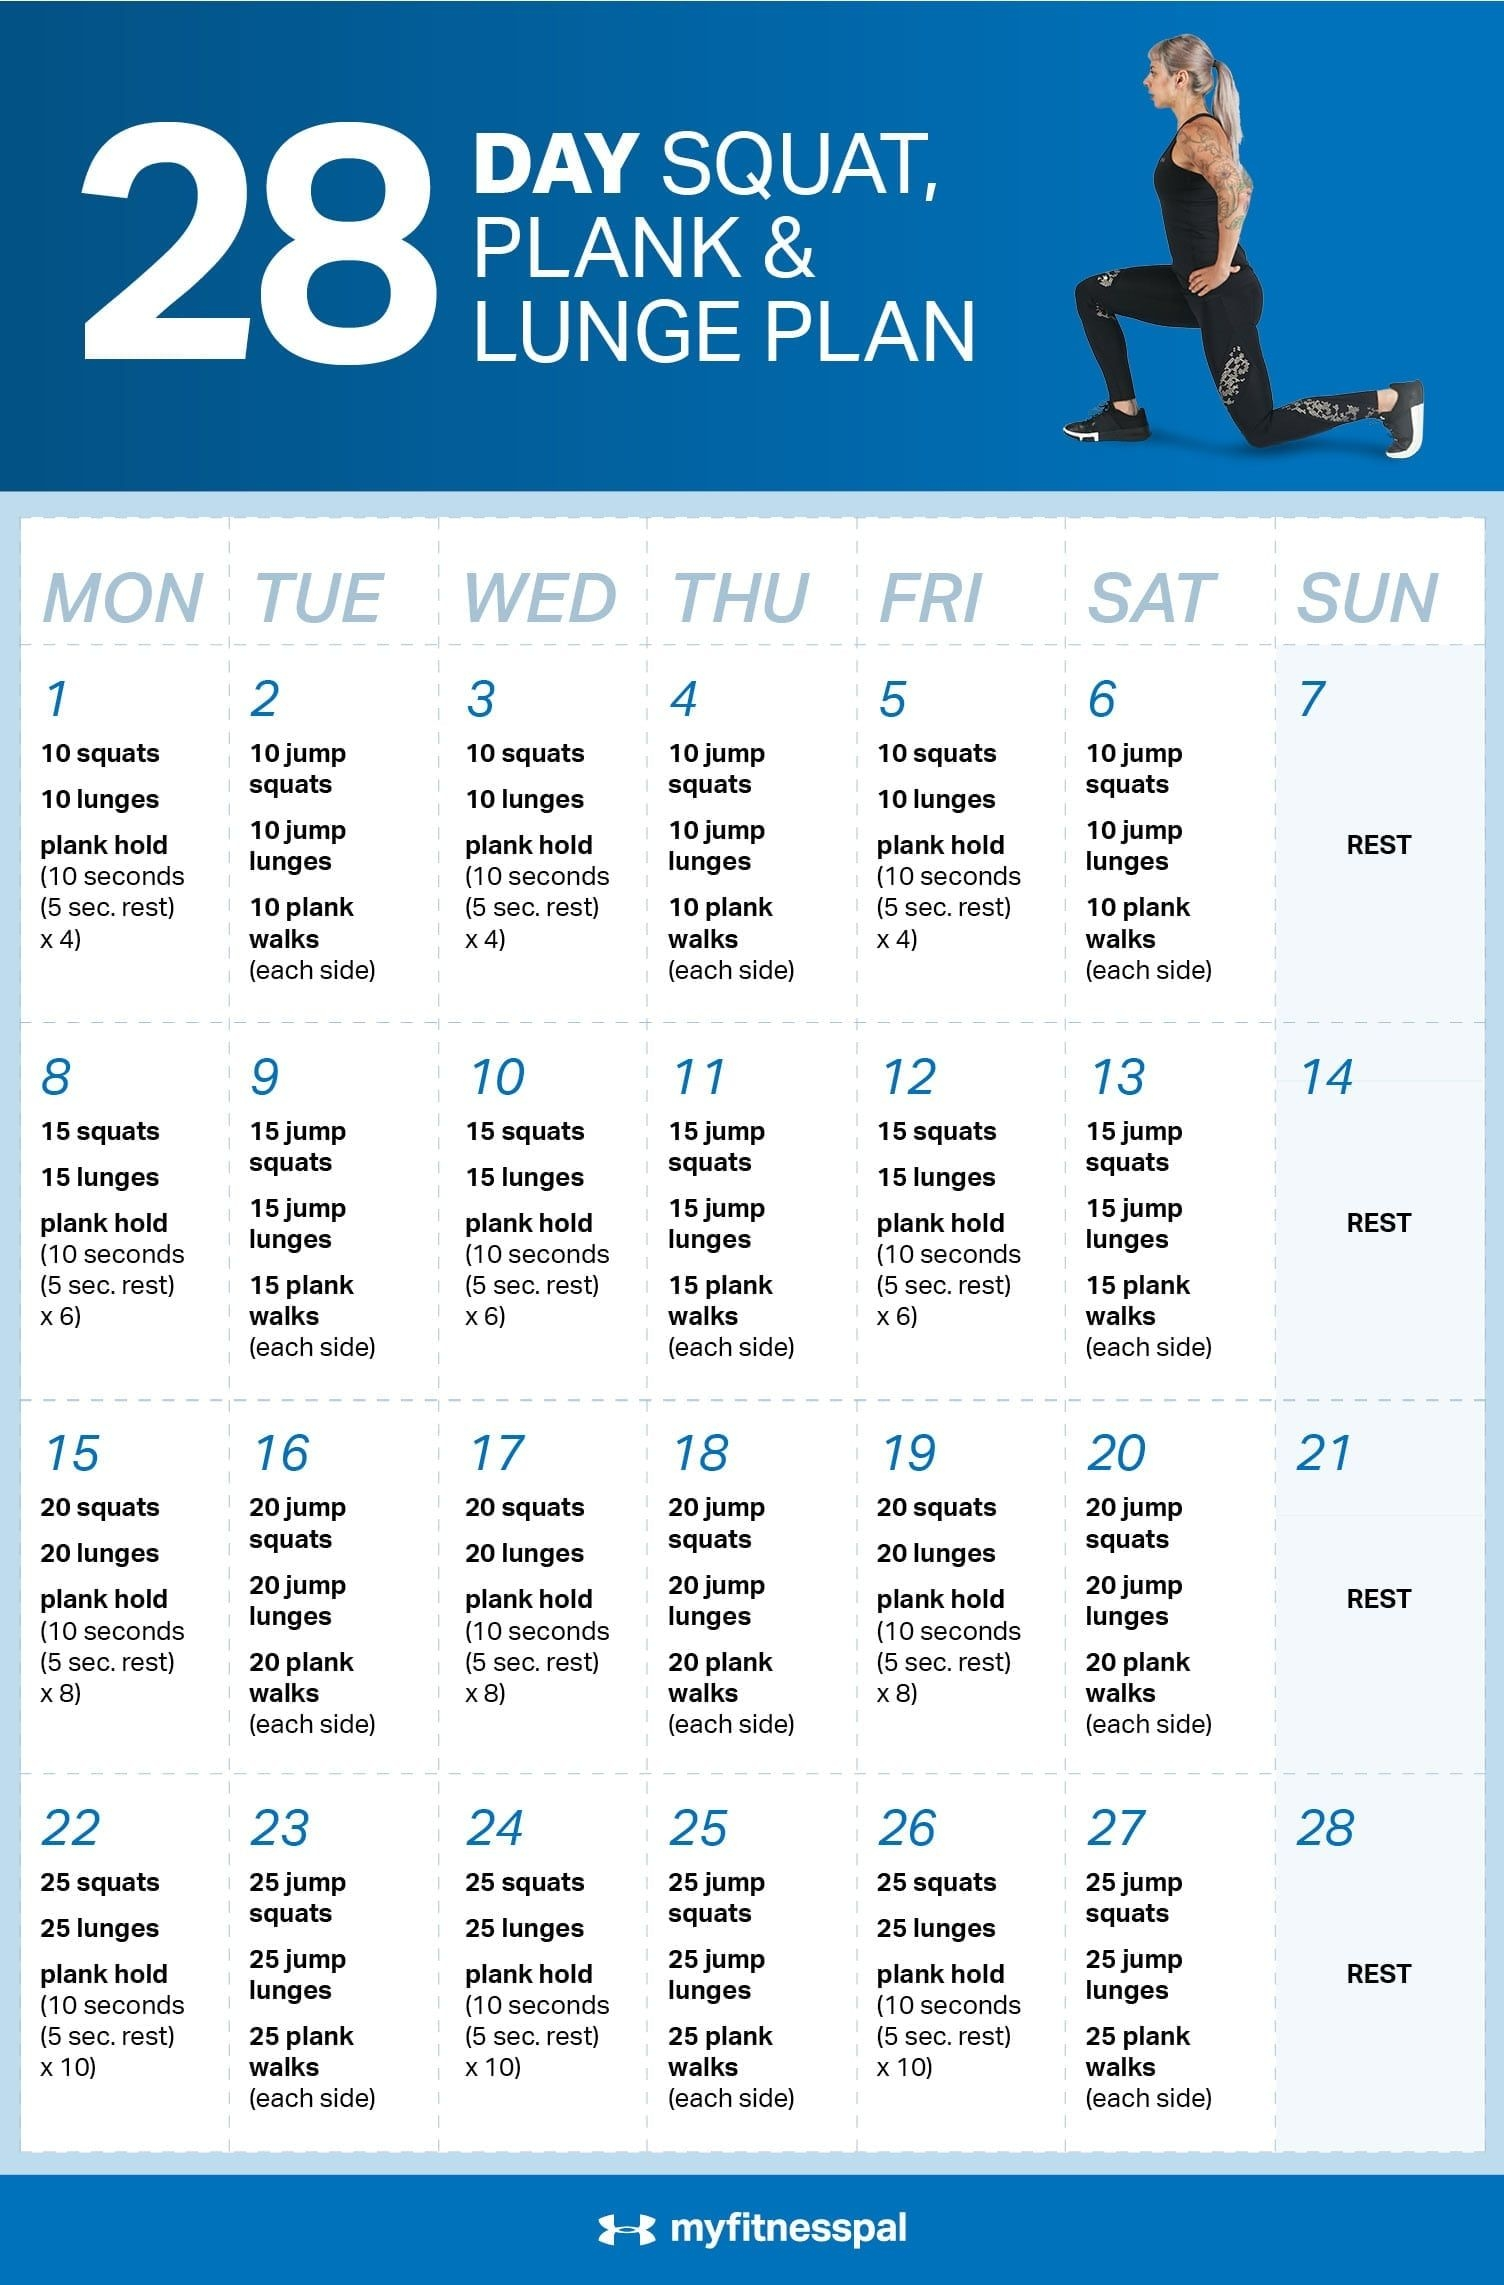 28-Day Squat, Plank & Lunge Plan | Fitness | Myfitnesspal